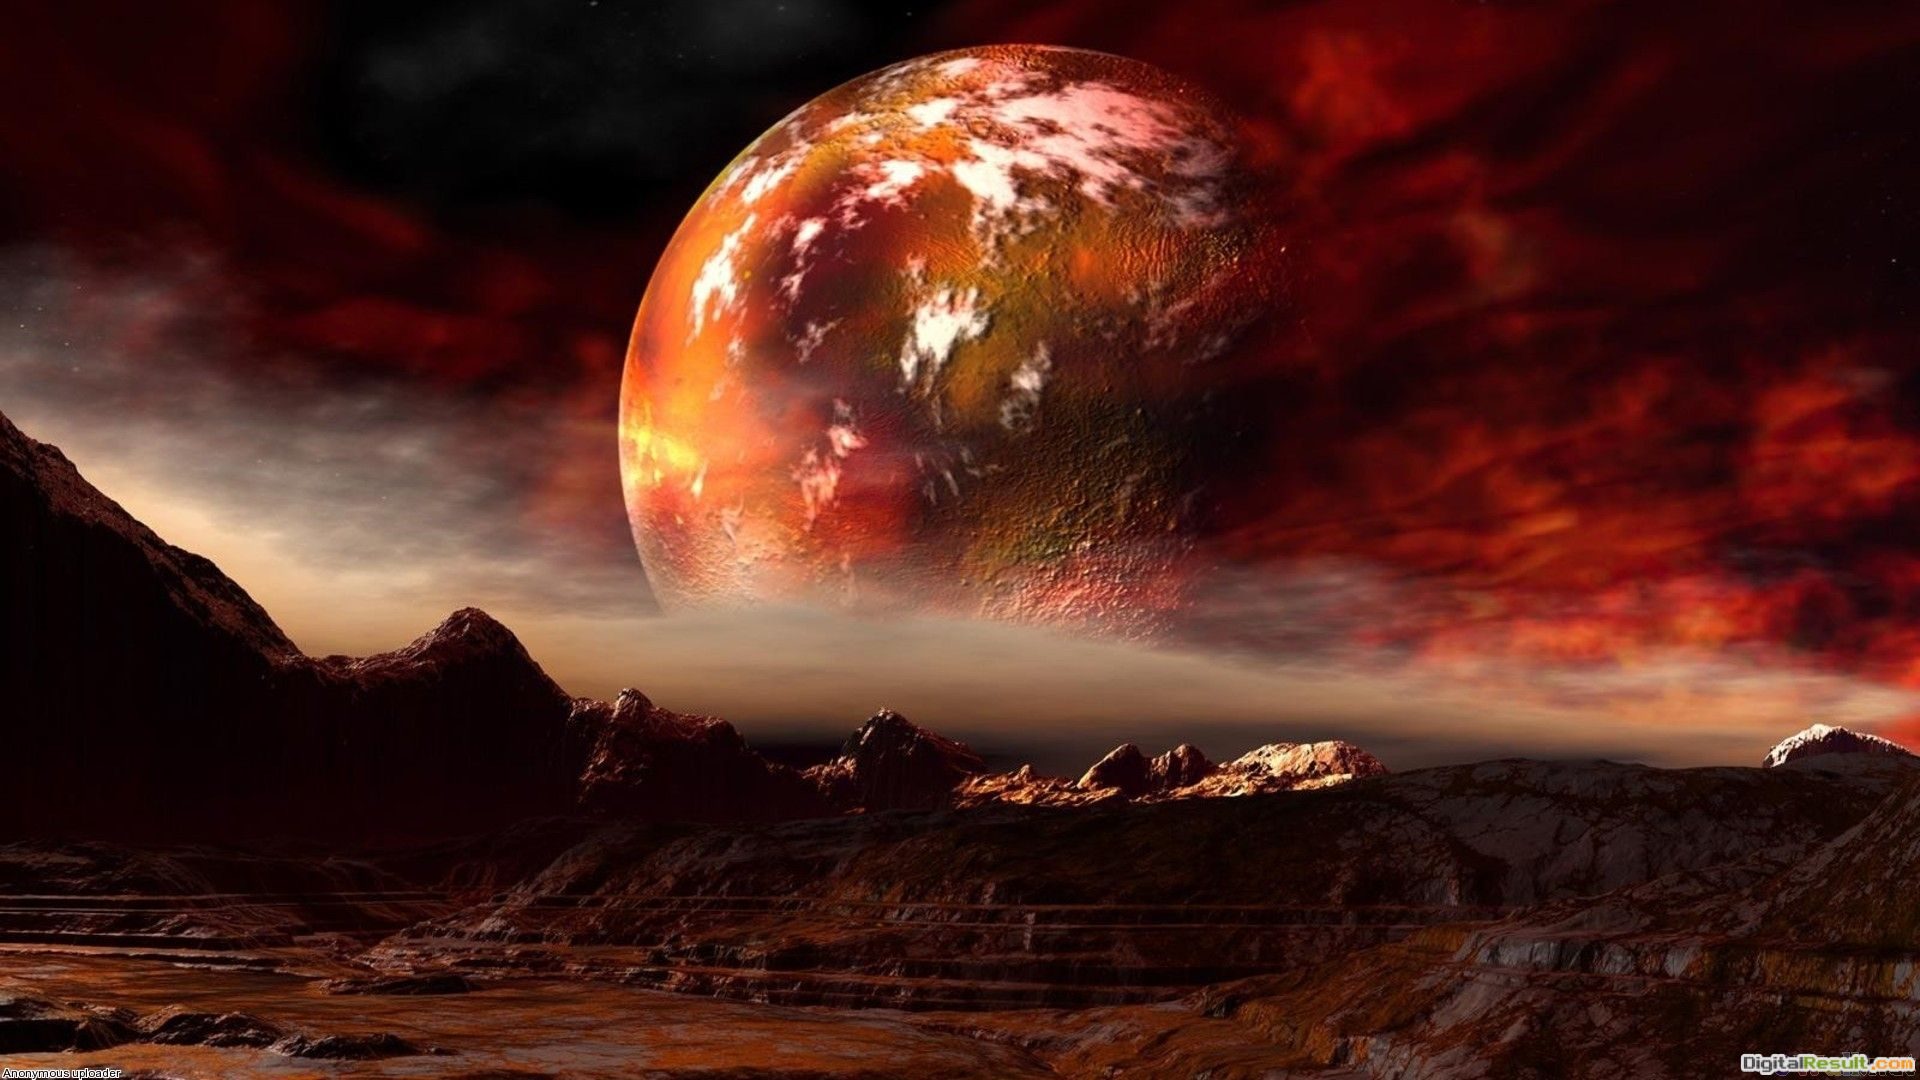 Red Planet wallpaper595061 1384